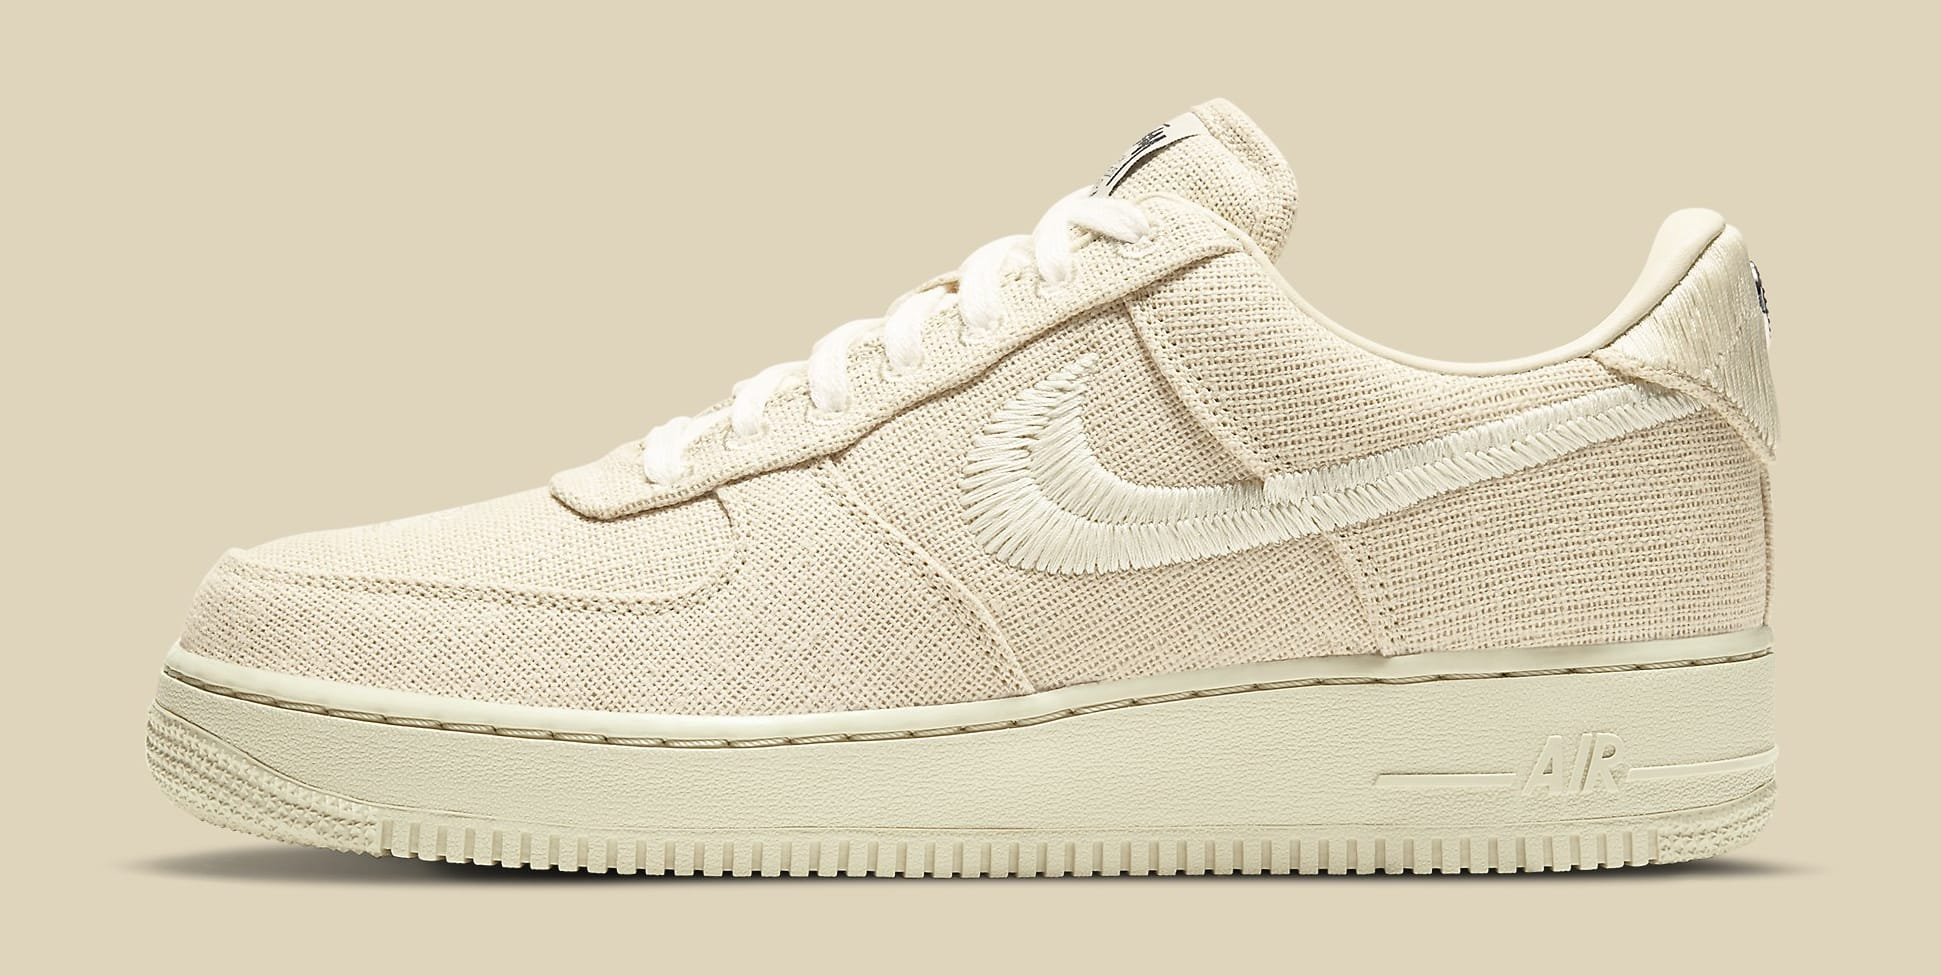 Stussy x Nike Air Force 1 Low 'Fossil Stone' CZ9084-200 Lateral